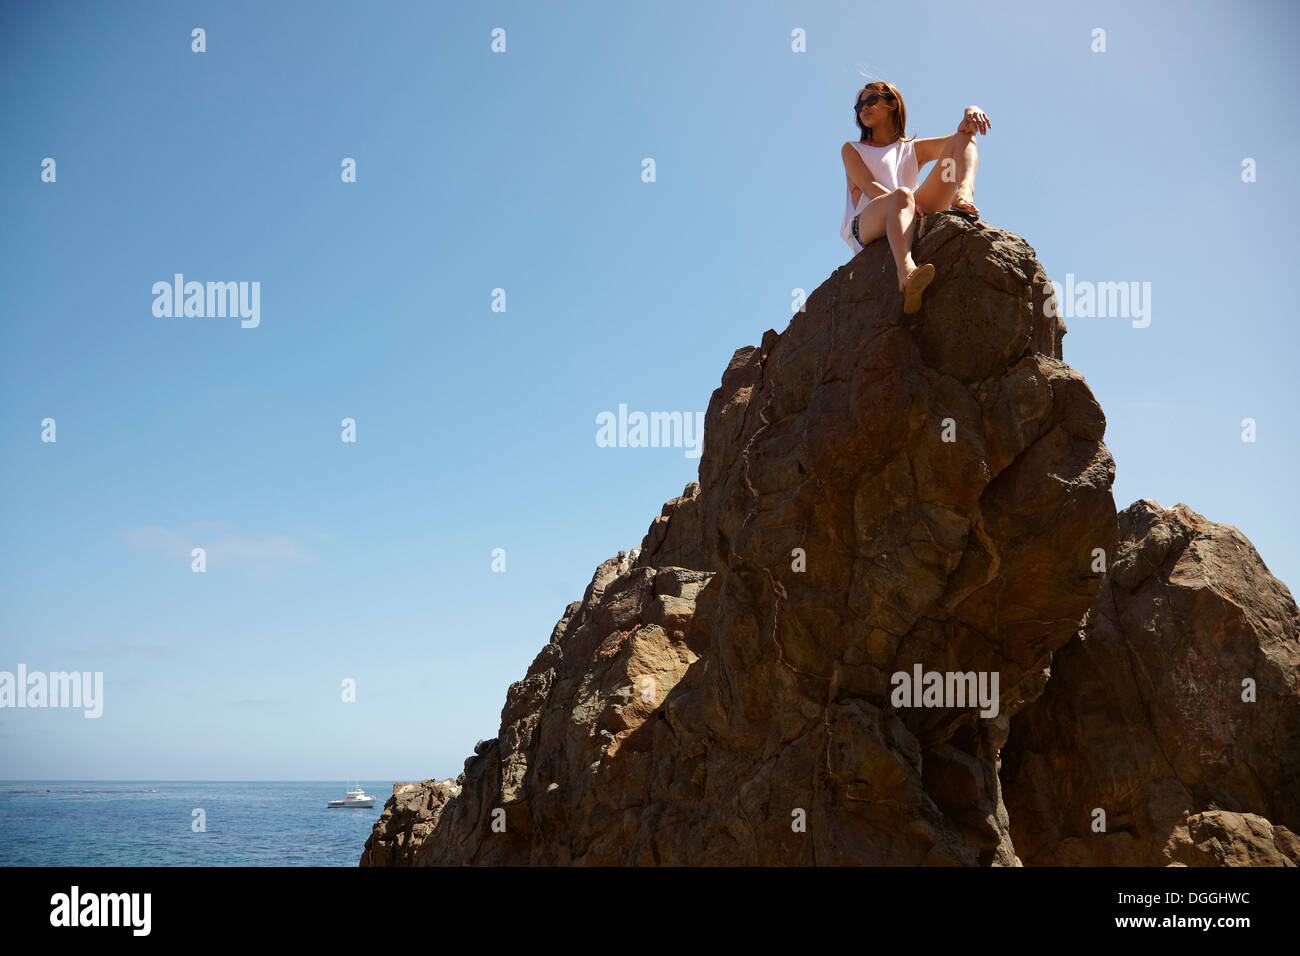 Young woman on top of rocks, Palos Verdes, California, USA - Stock Image